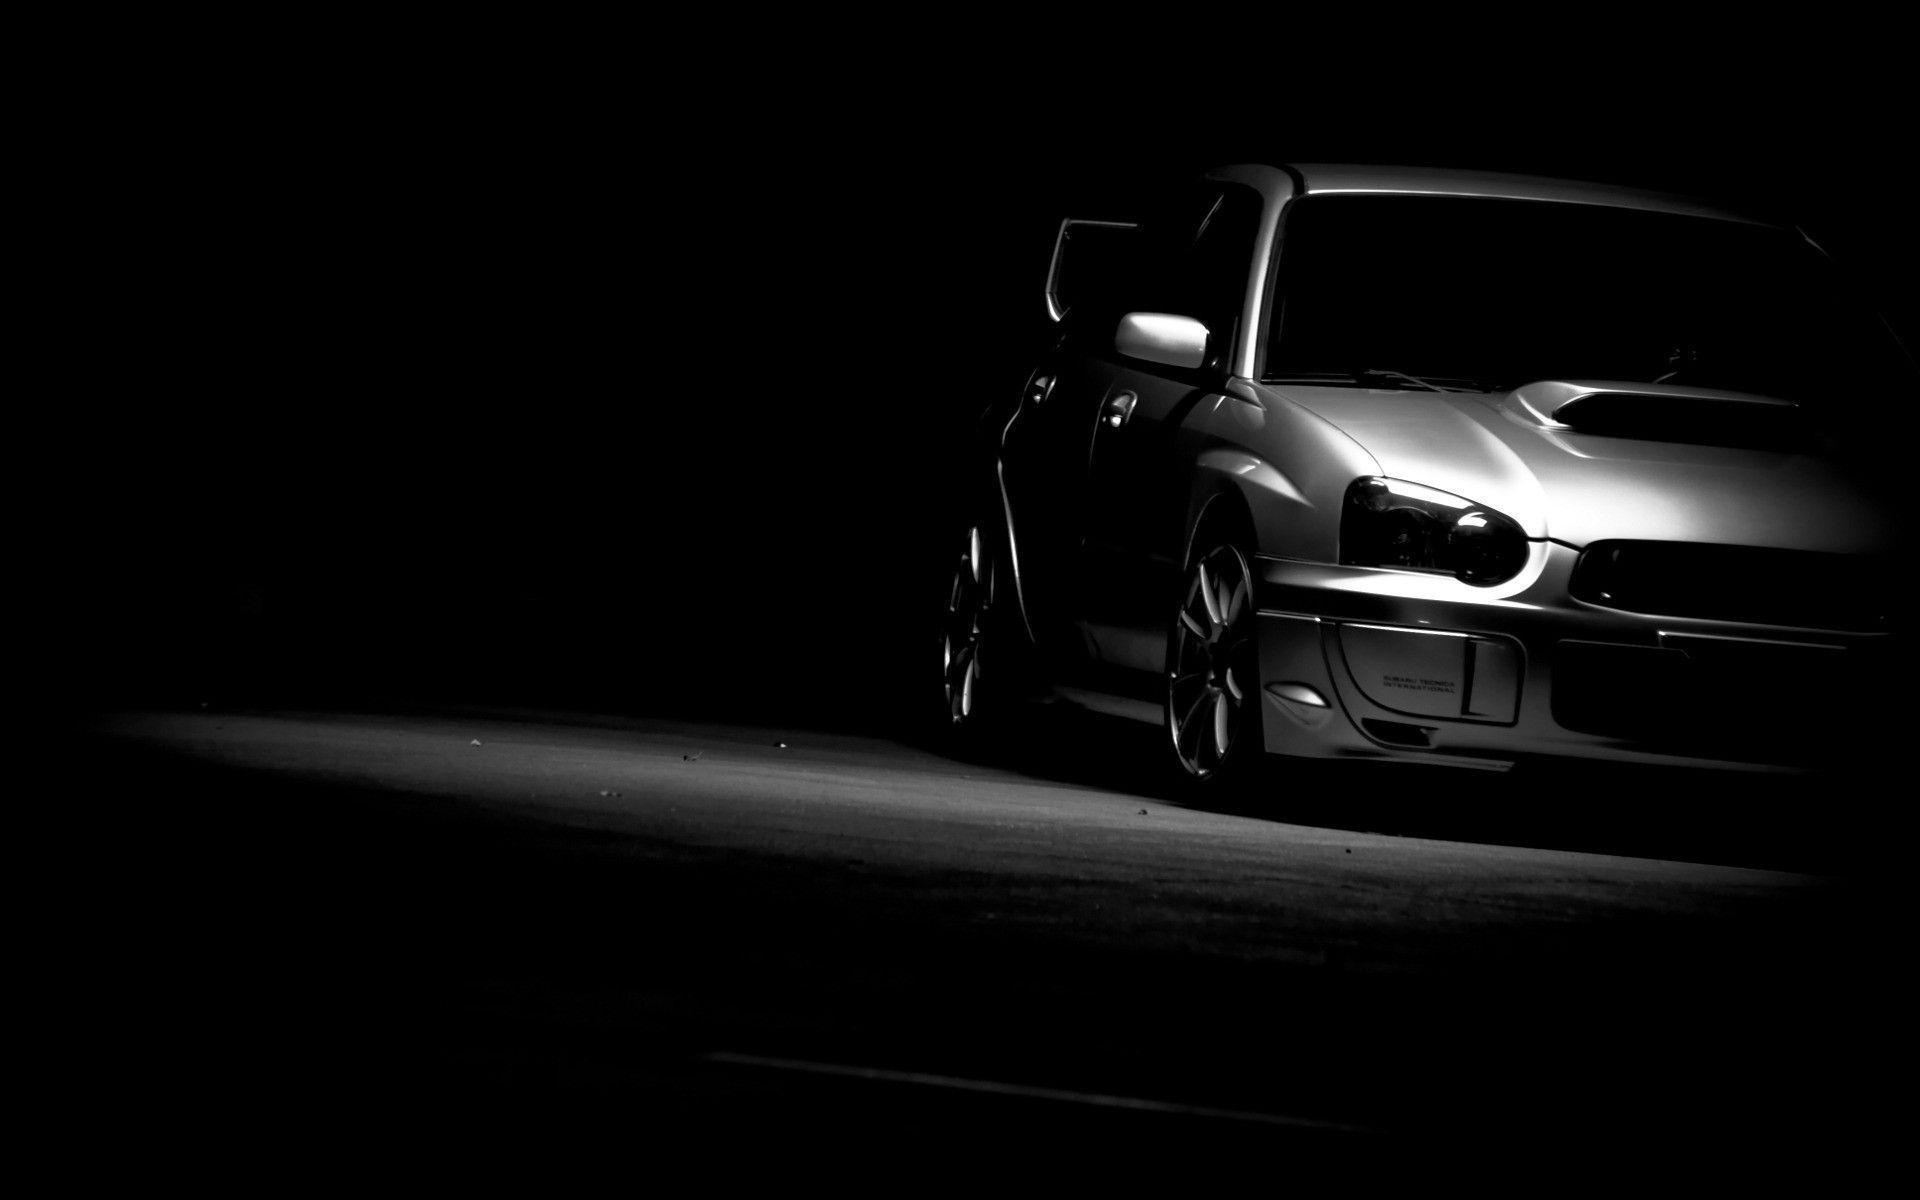 Subaru Impreza Wrx Sti Wallpapers Wallpaper Cave